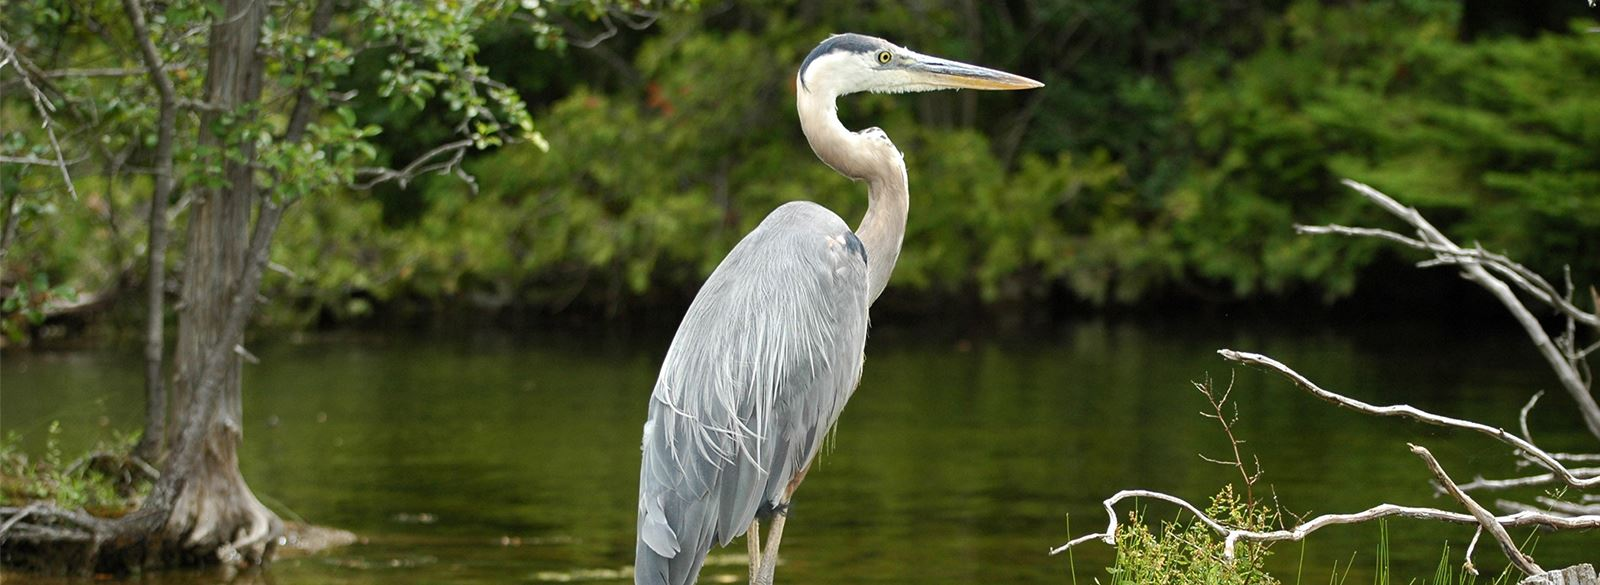 Blue Heron standing by intracoastal waterway